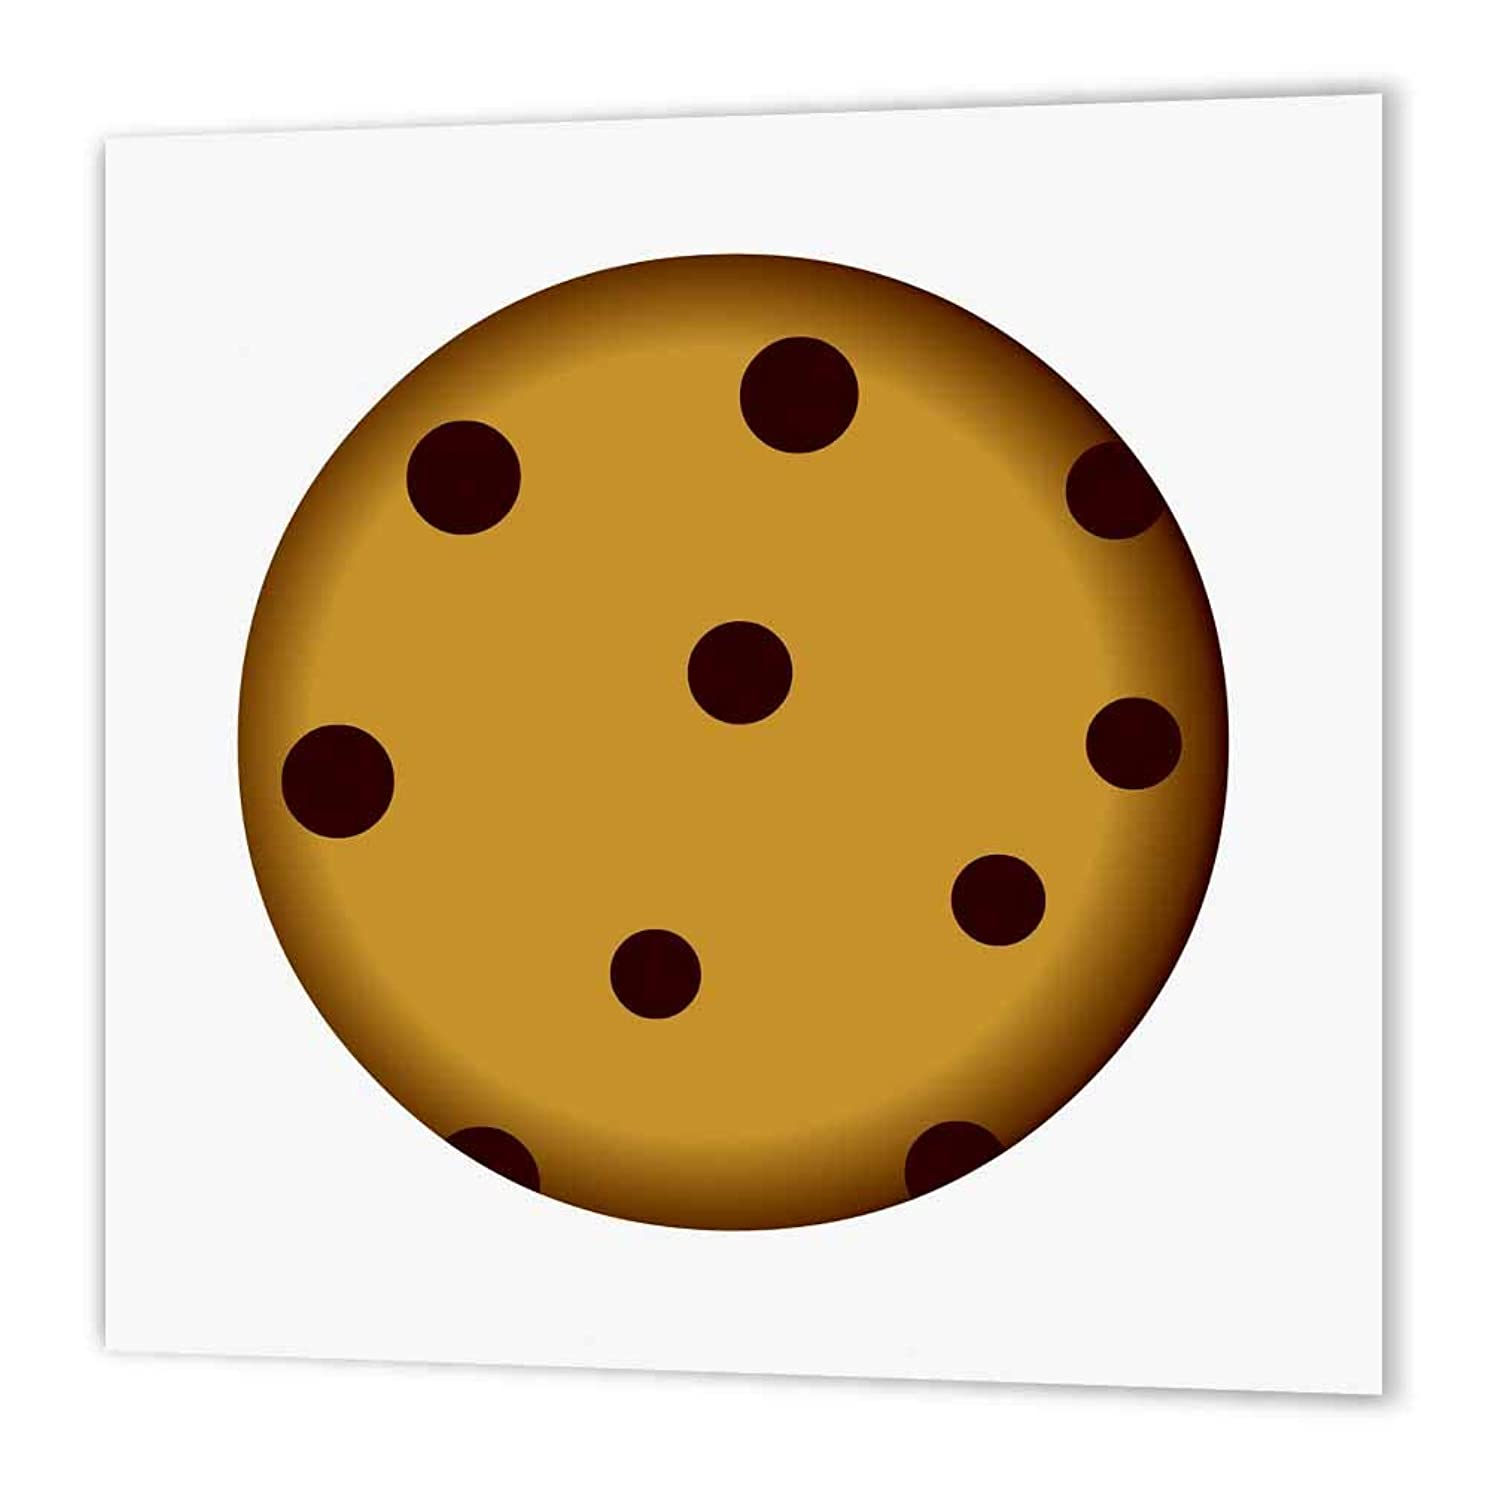 3dRose ht_43214_1 Large Chocolate Chip Cookie Cartoon Iron on Heat Transfer, 8 by 8